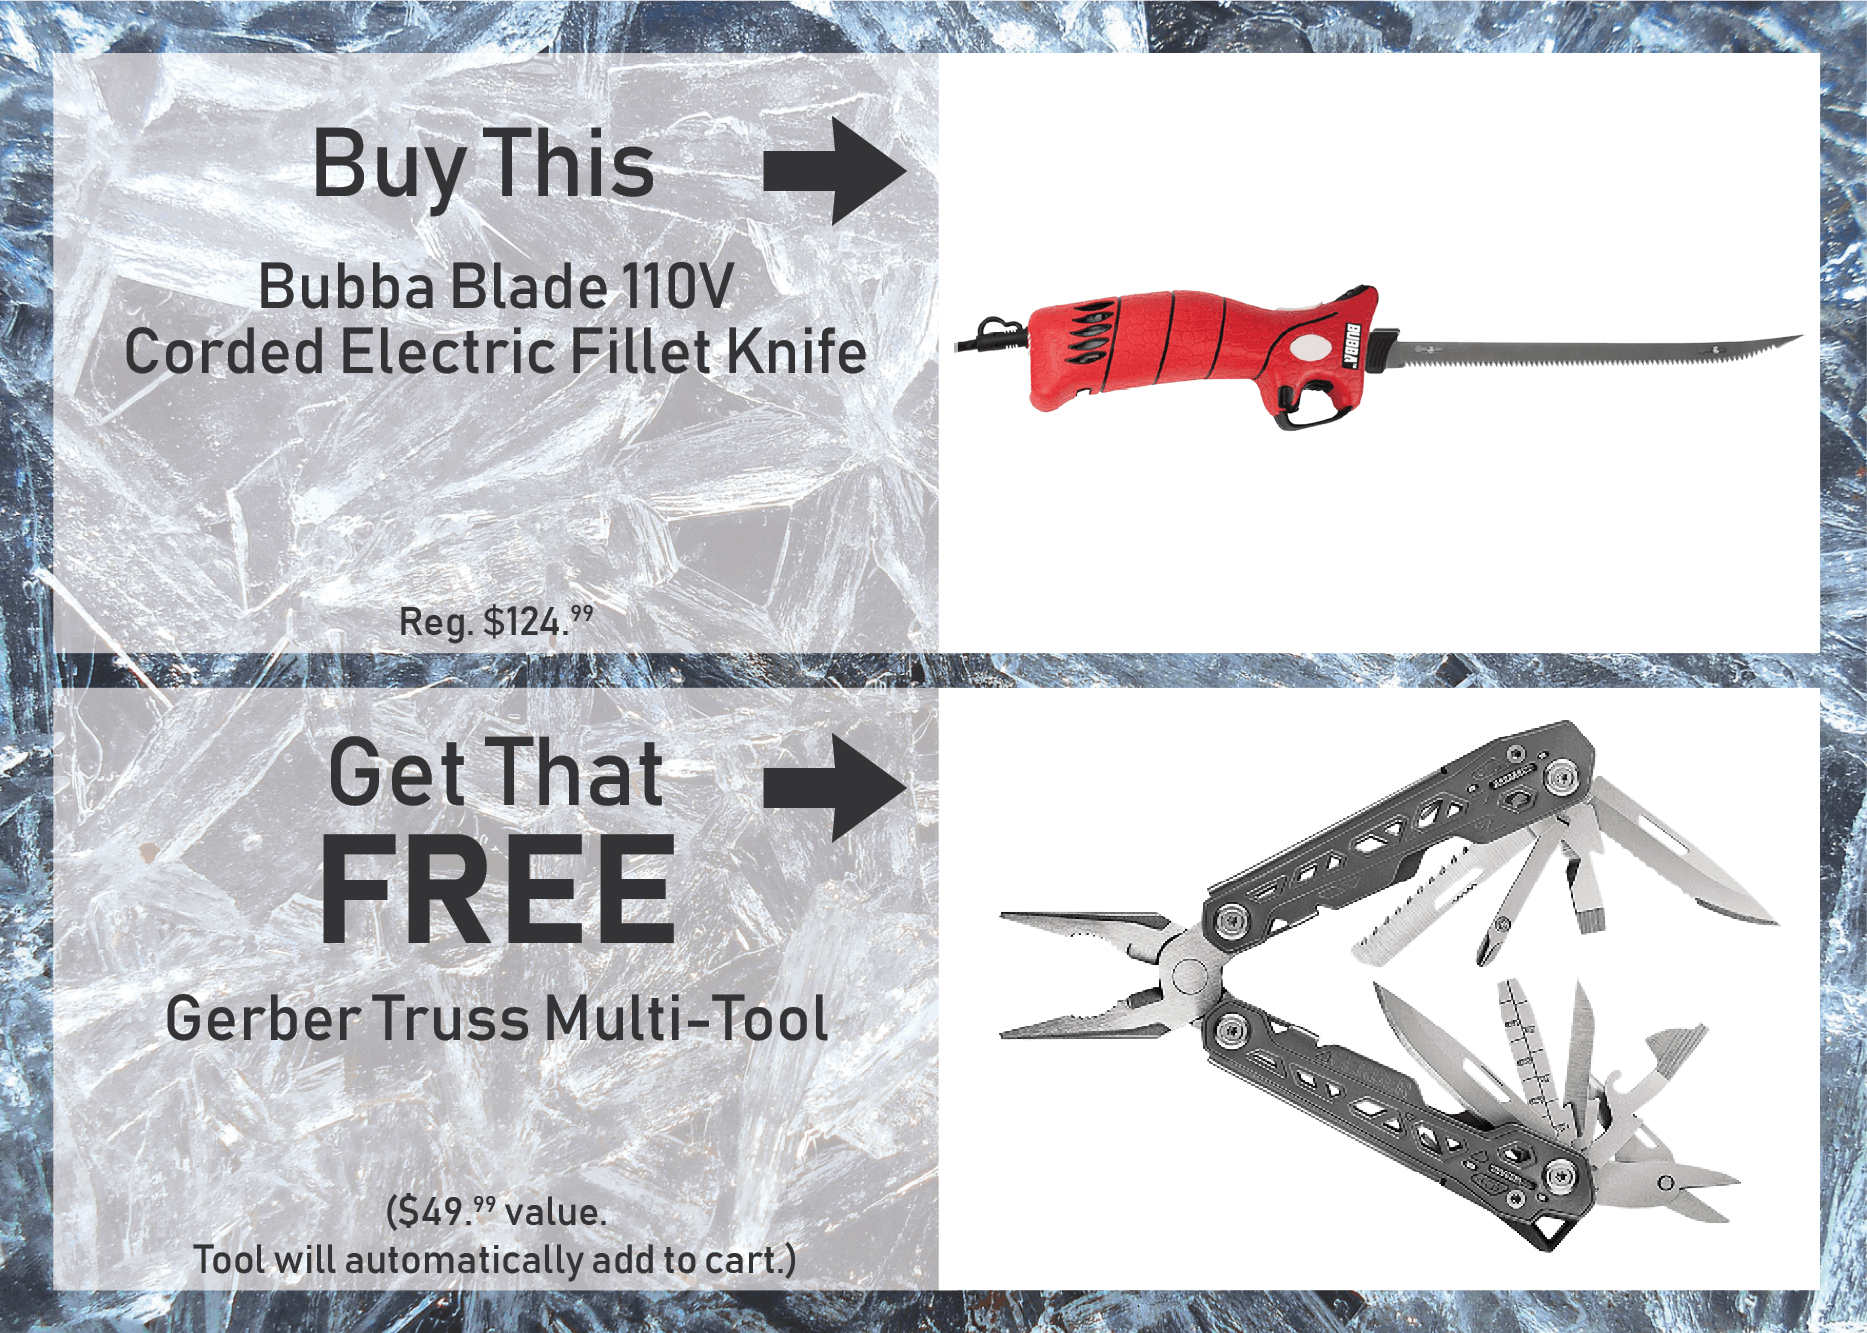 Buy a Bubba Blade 110V Corded Electric Fillet Knife & GET a Gerber Truss Multi-Tool FREE!